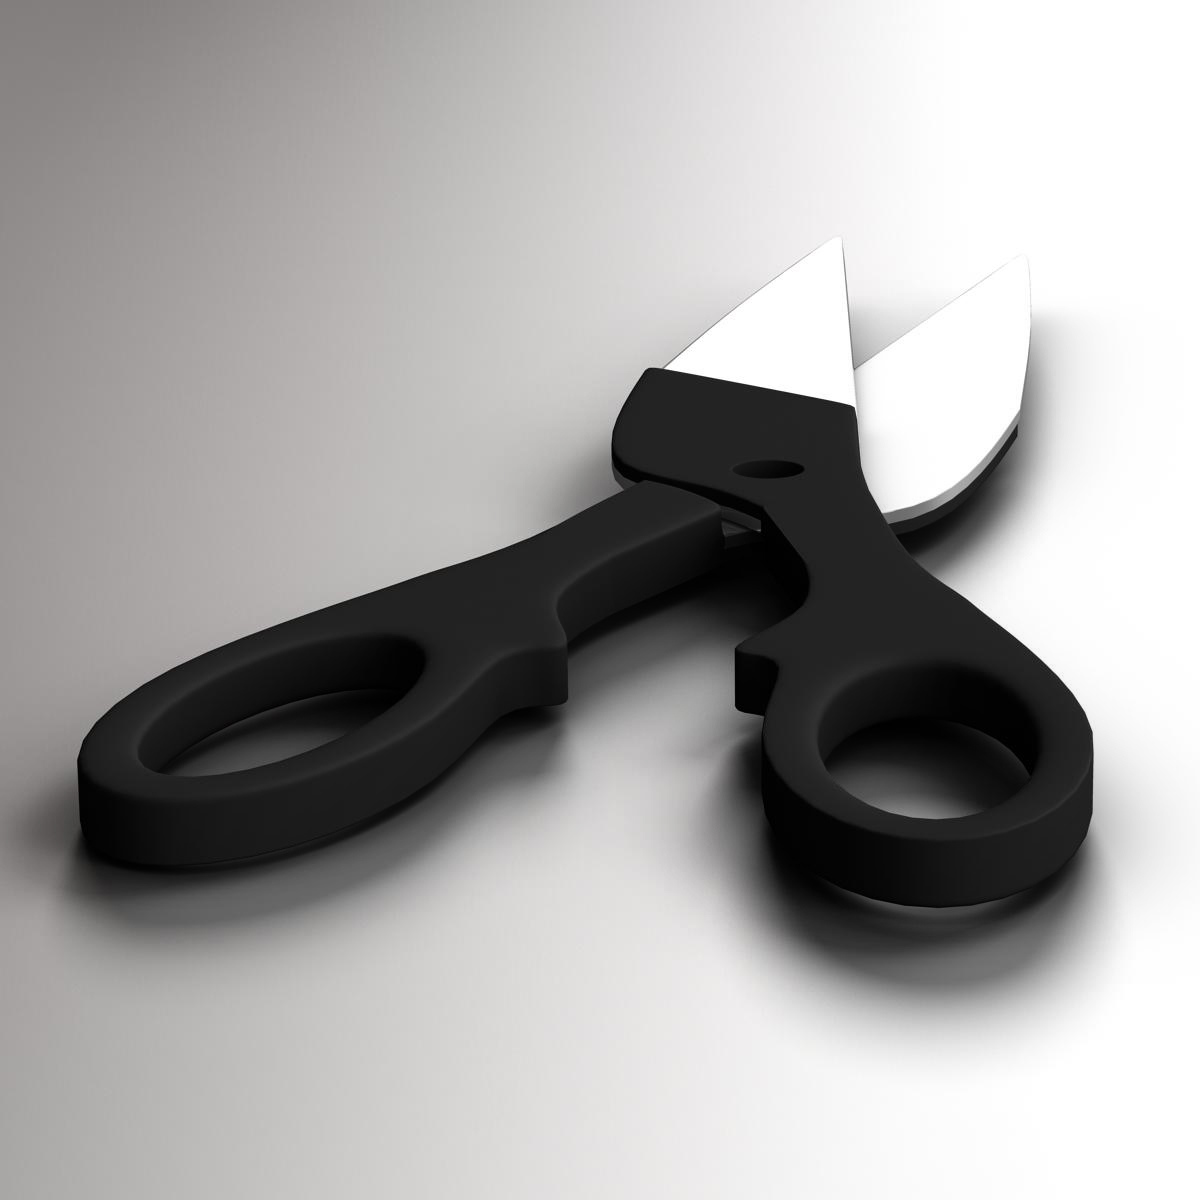 scissors v3 3d model 3ds max fbx c4d ma mb obj 159097